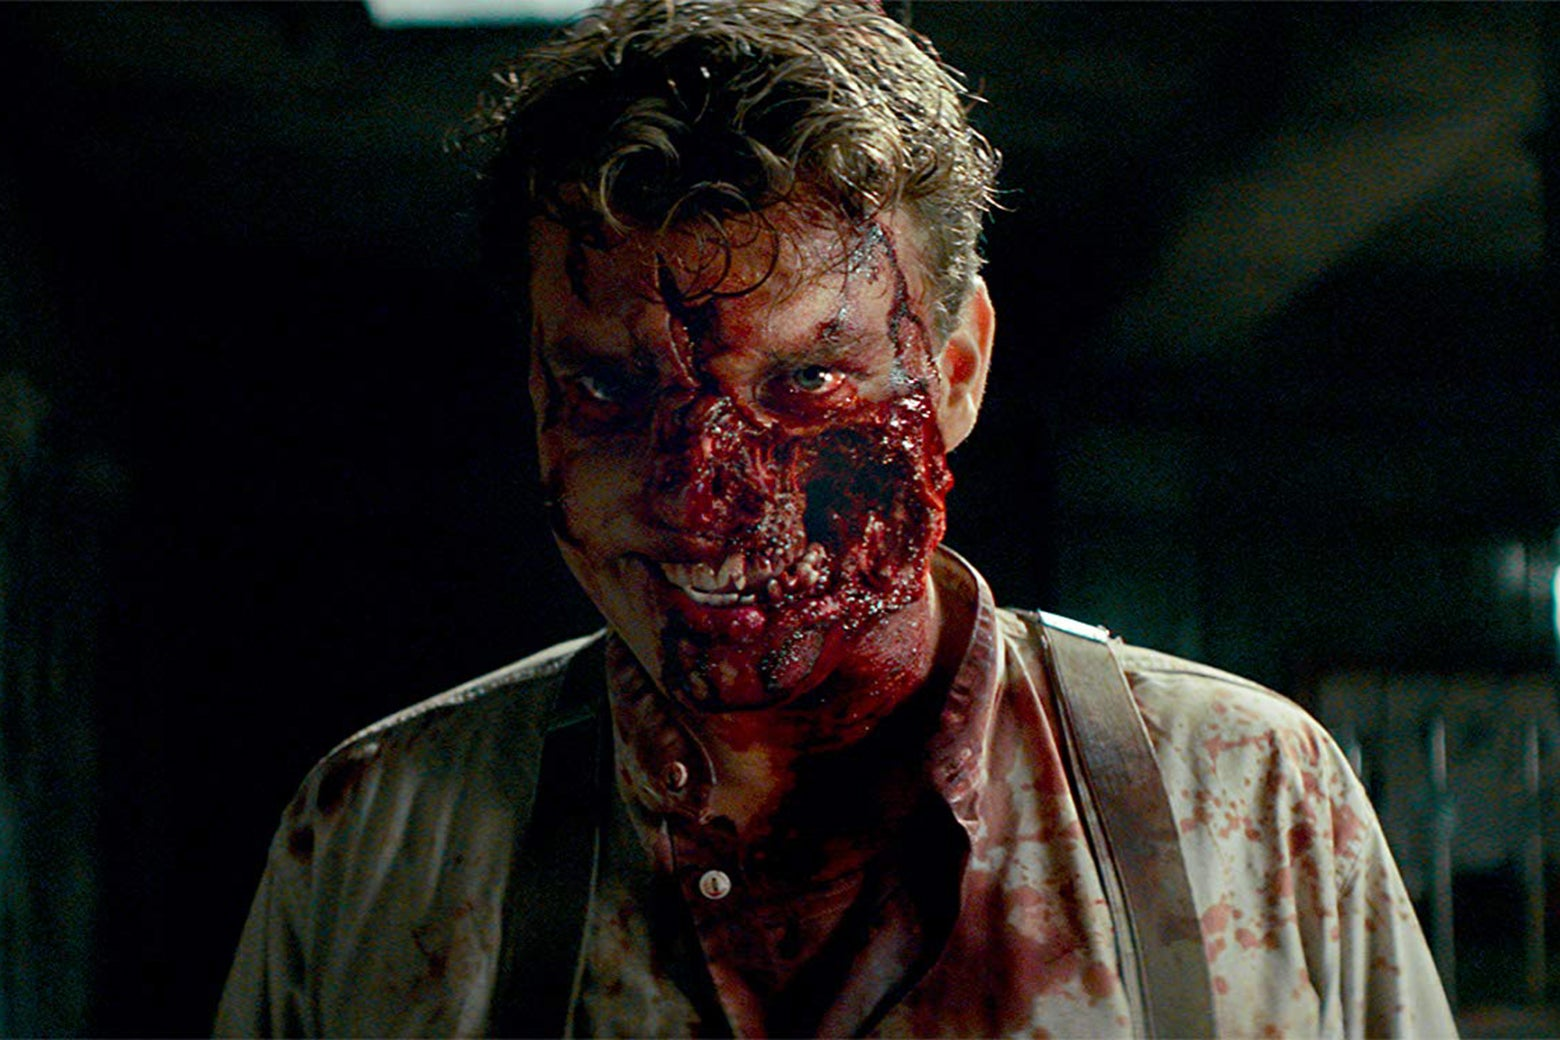 Actor Pilou Asbæk in a still from Overlord in which he is playing a Nazi zombie with half his face blown off.